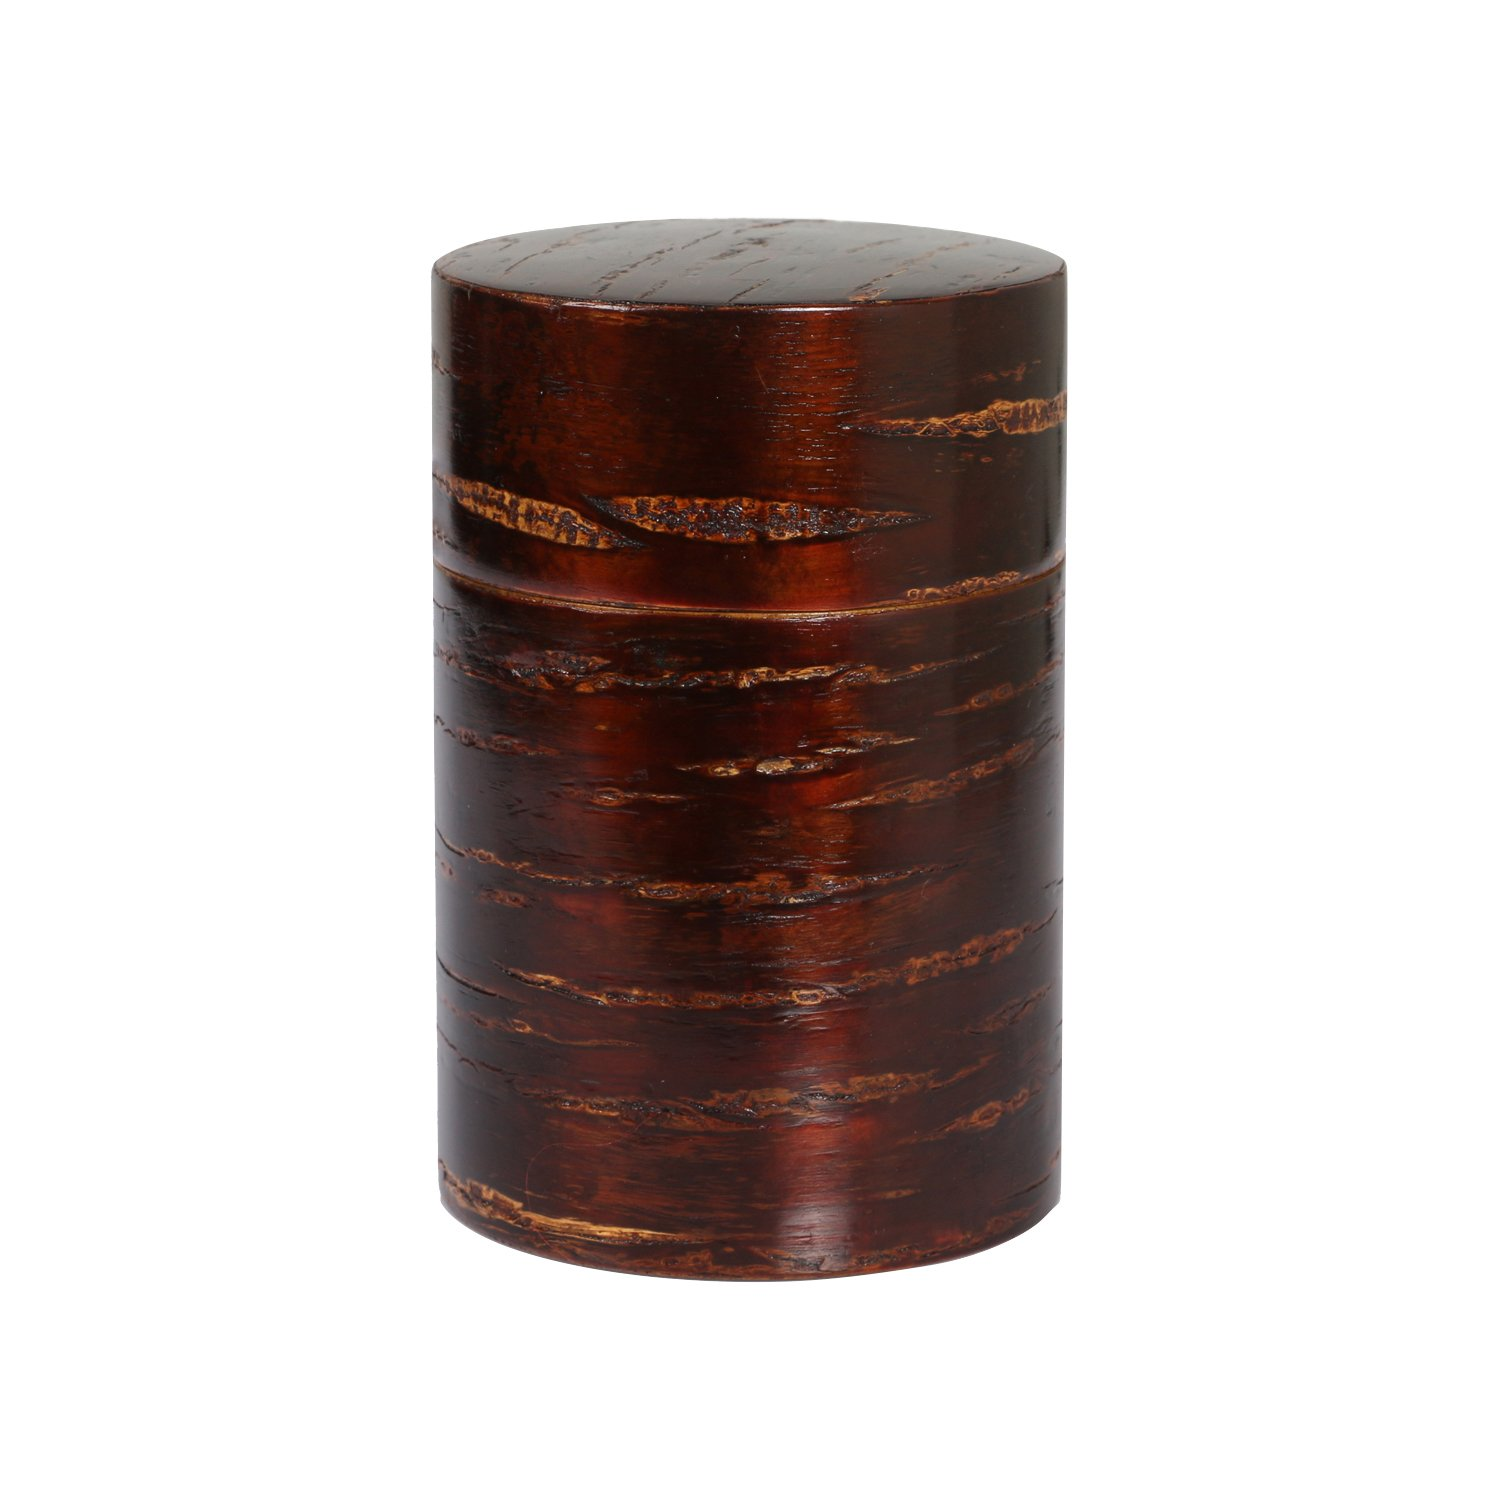 OYL Creative Retro Cherry Bark Tea Caddy, Handcraft Wood Tea Canister with Tea Scoop JLD